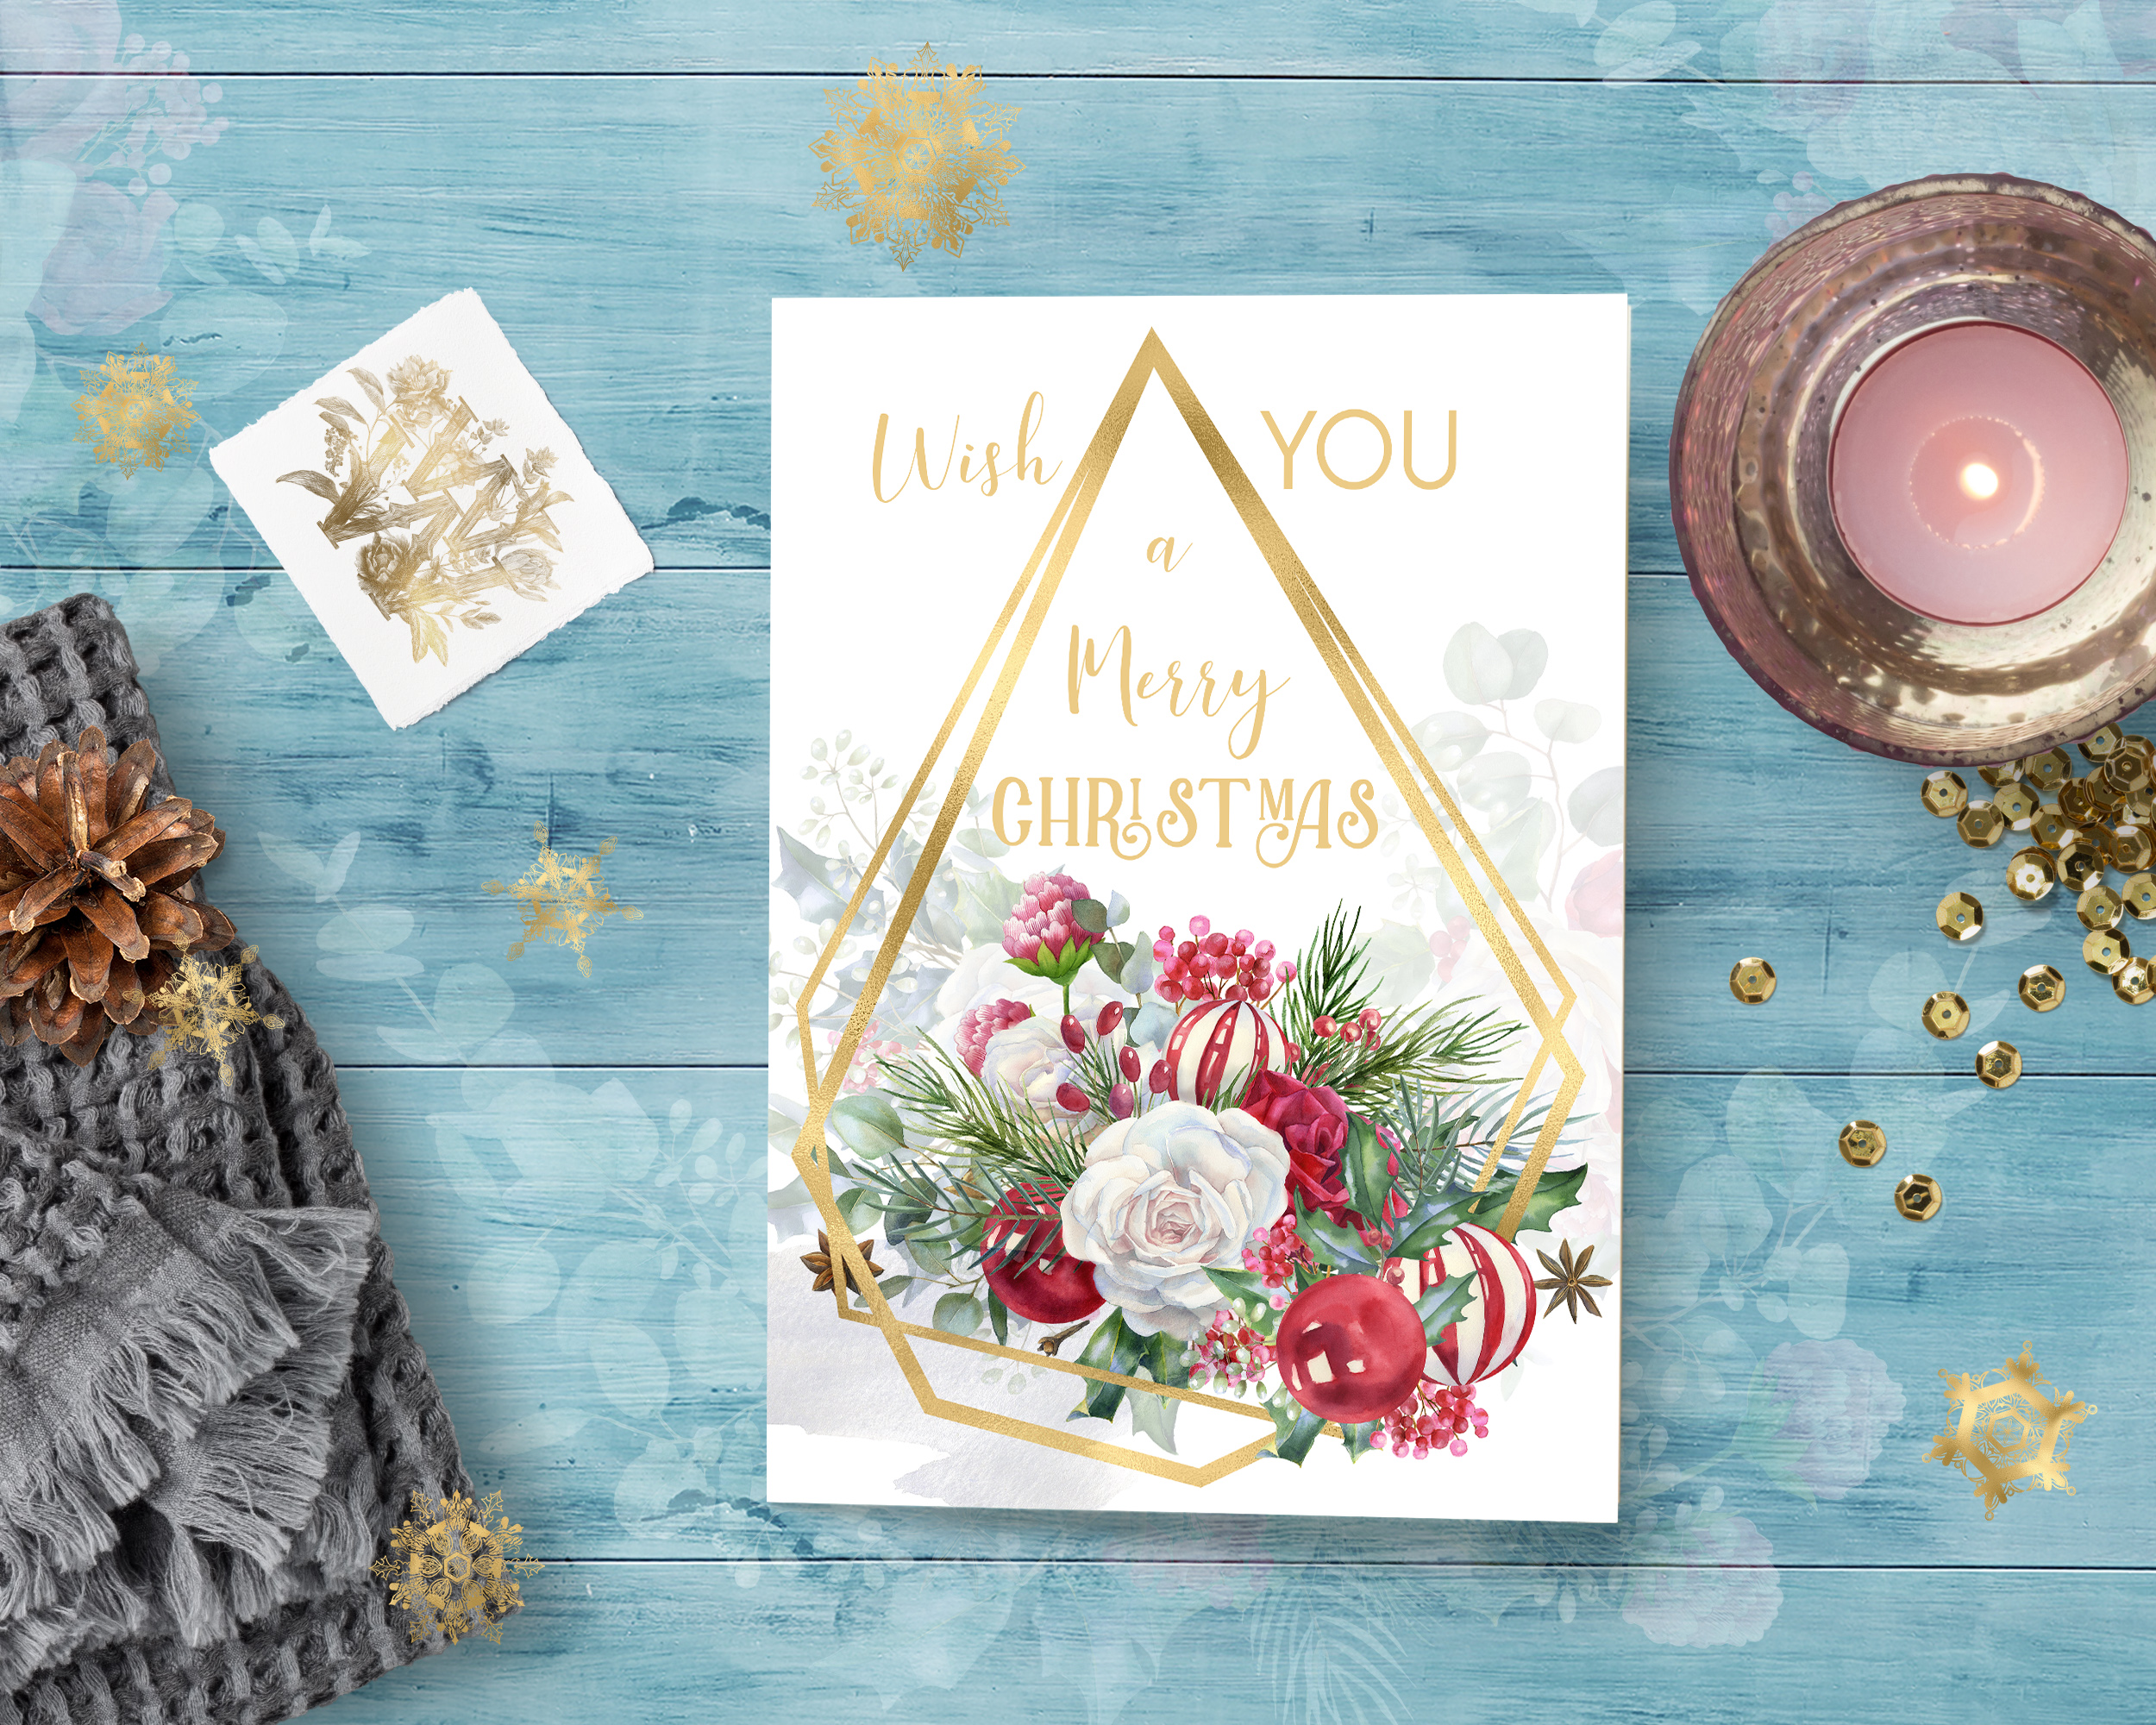 Christmas floral border clipart, Watercolor winter frame example image 9